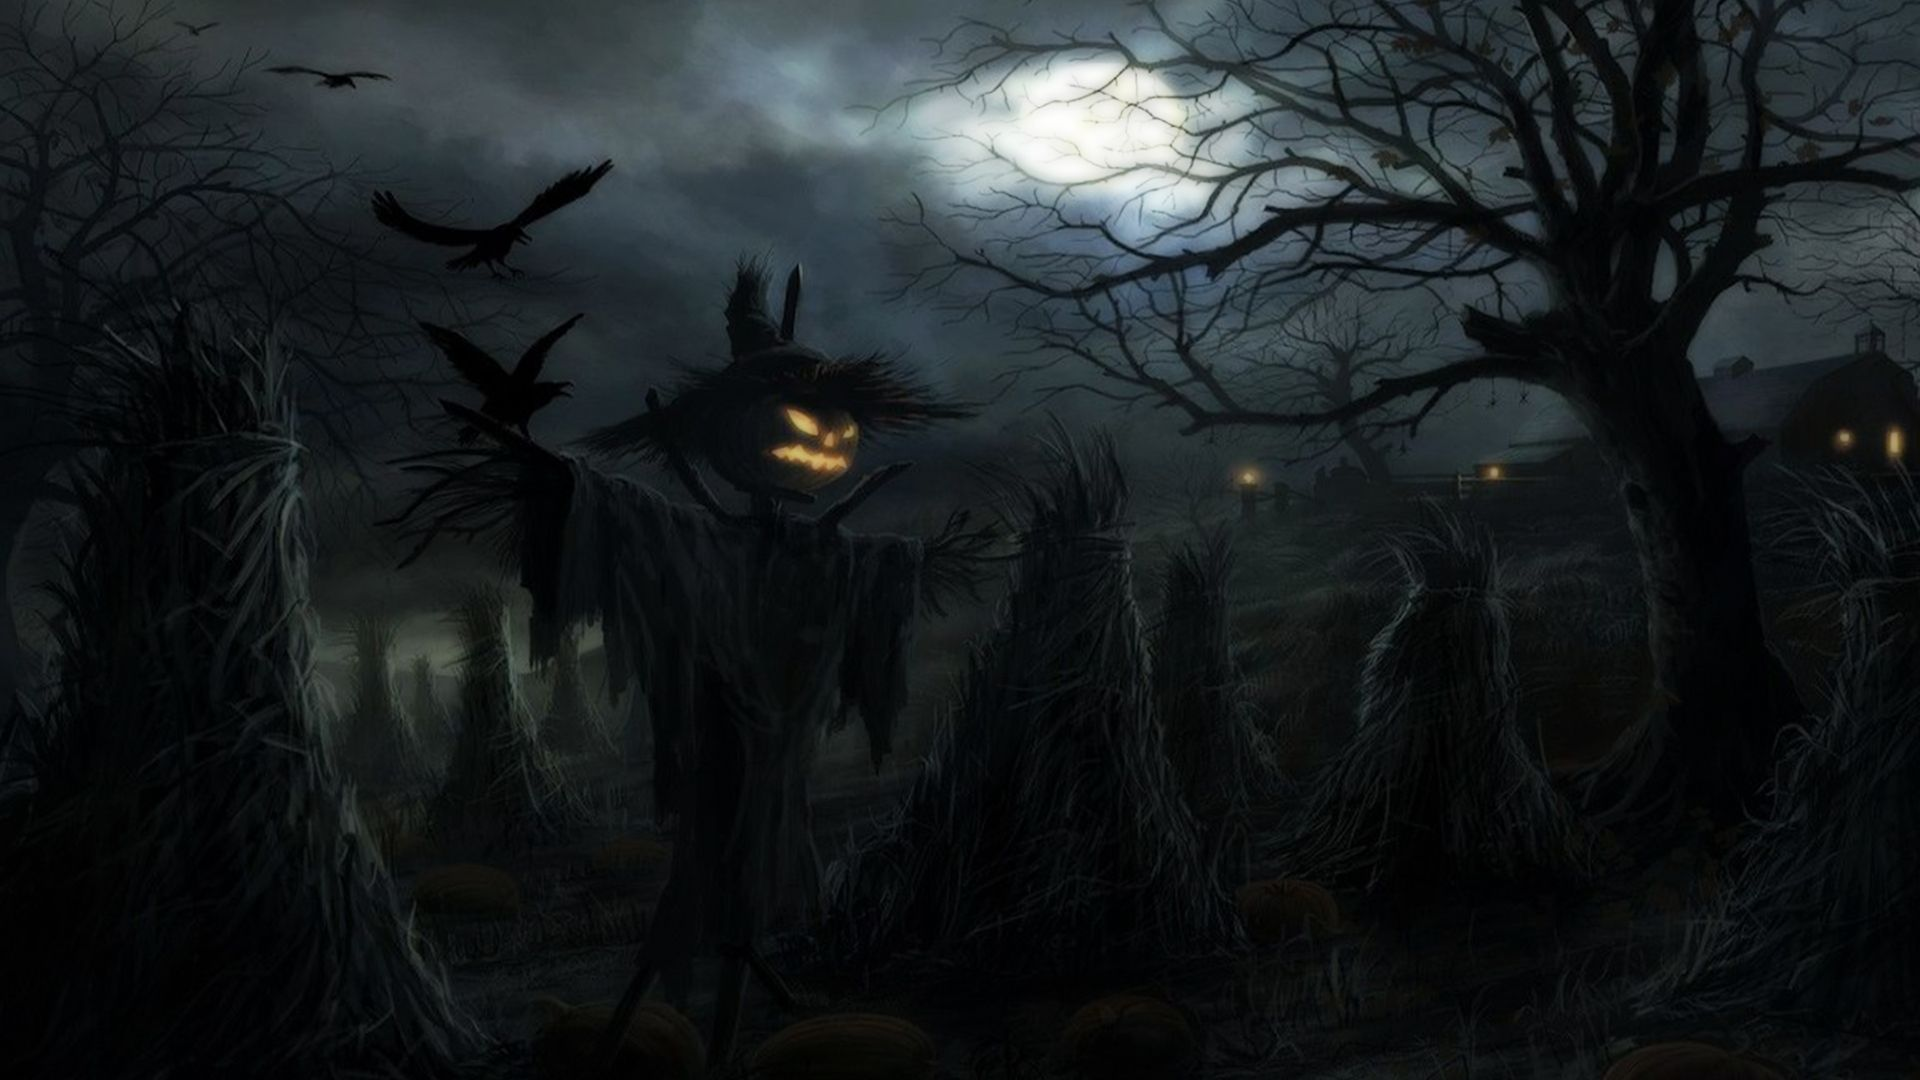 Scary Halloween Background wallpaper Sentimental